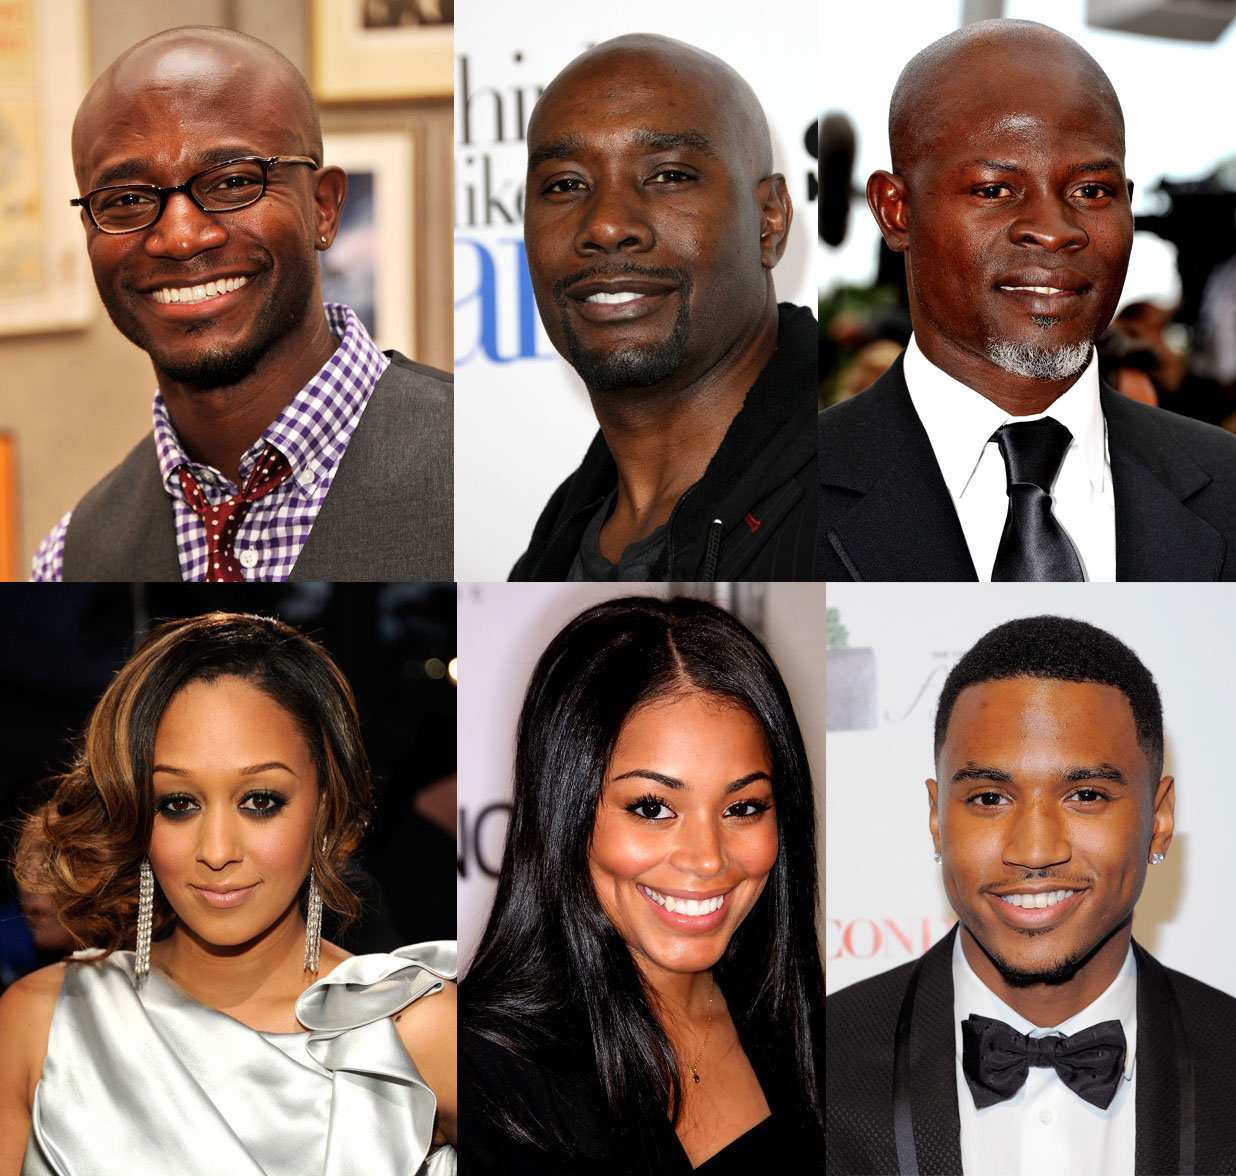 Baggage Claim cast Trey Songz, Morris Chestnut, Derek Luke, & Taye Diggs Team For Baggage Claim Movie